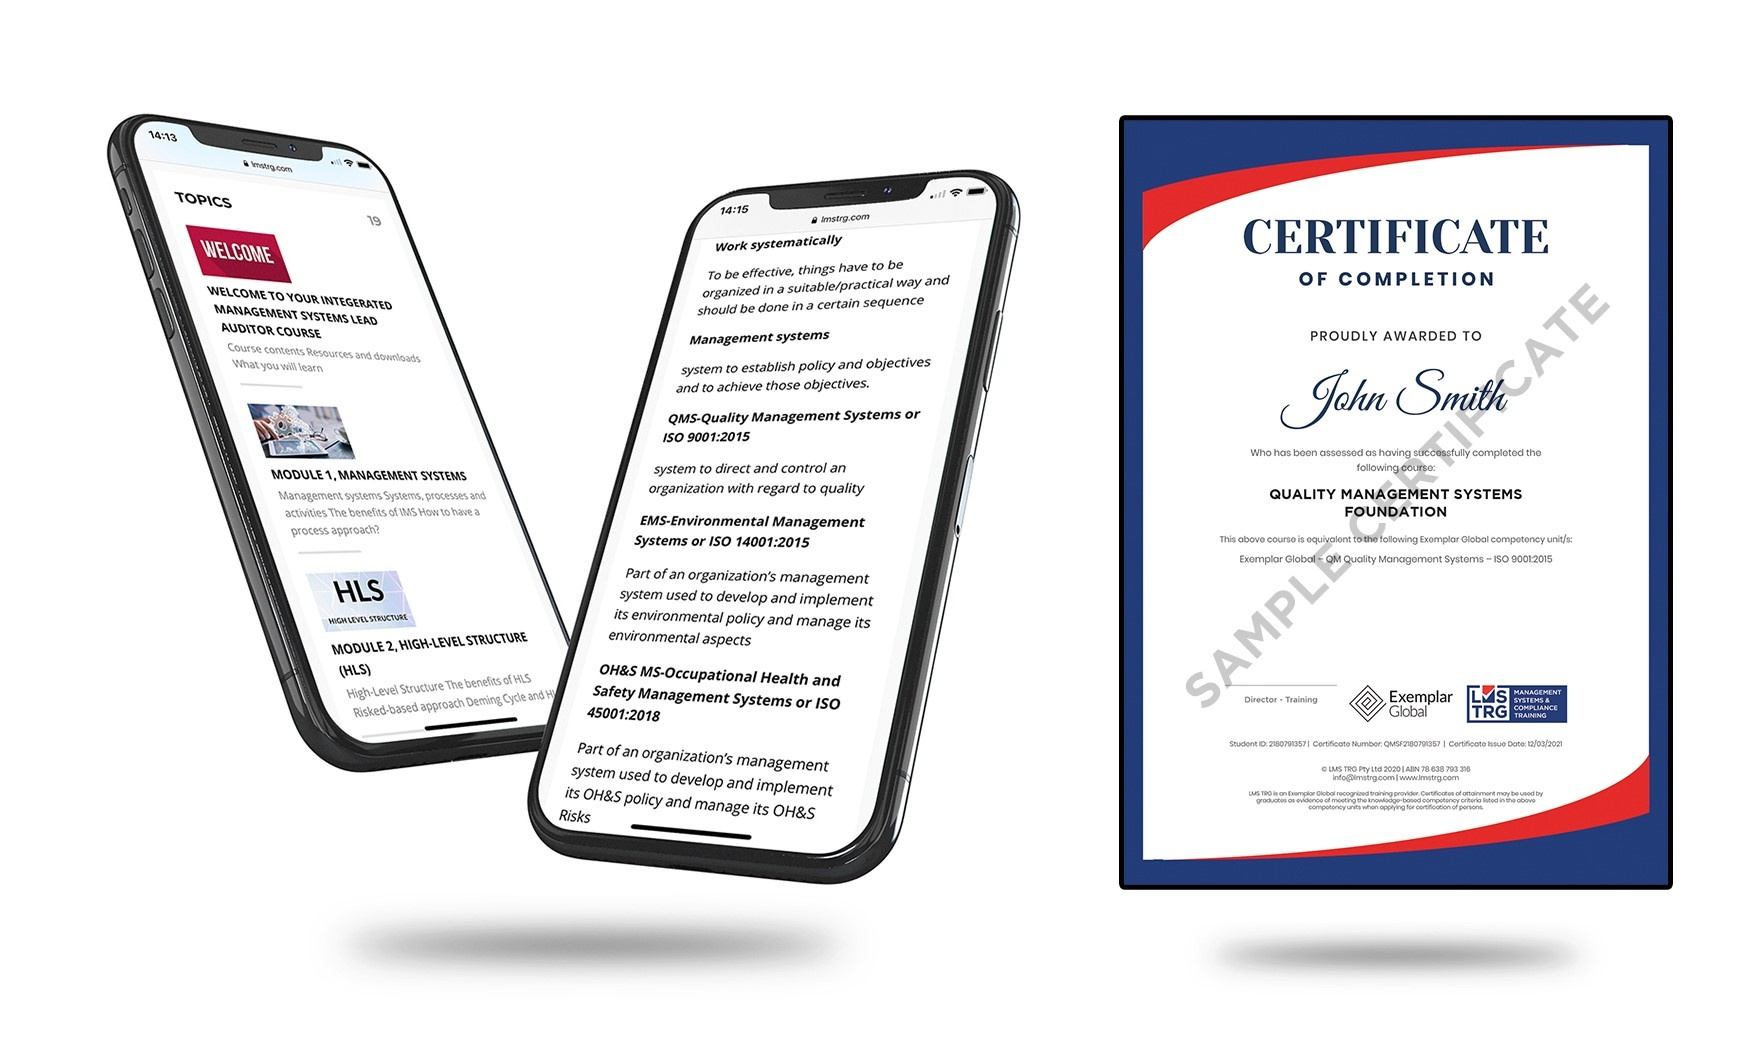 ISO Online Training Certificate by Exemplar Global